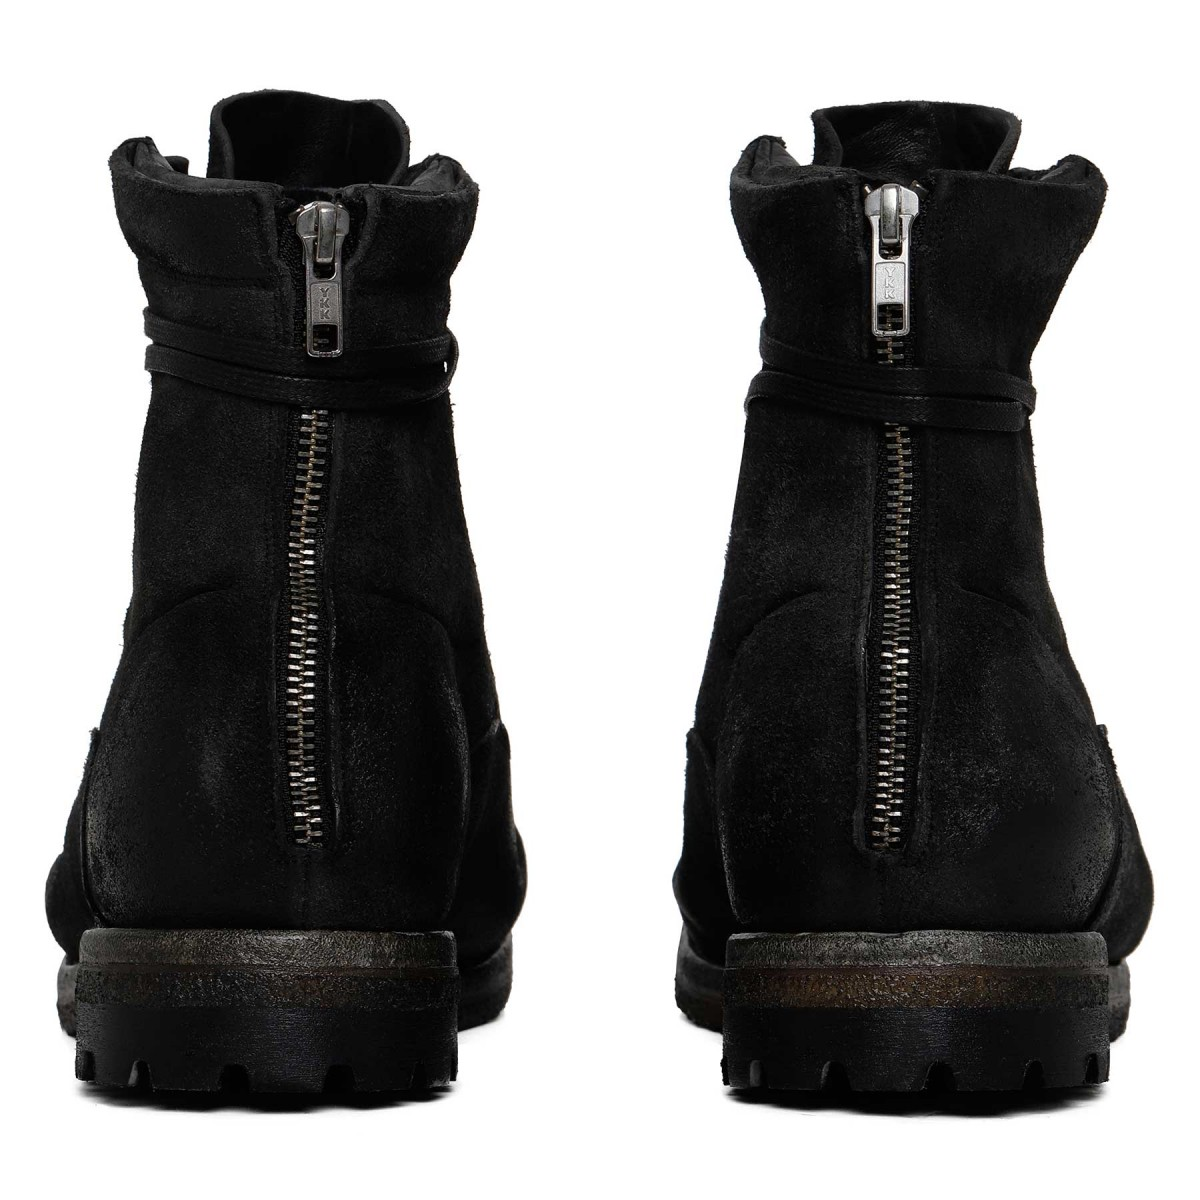 Black suede leather ankle boots